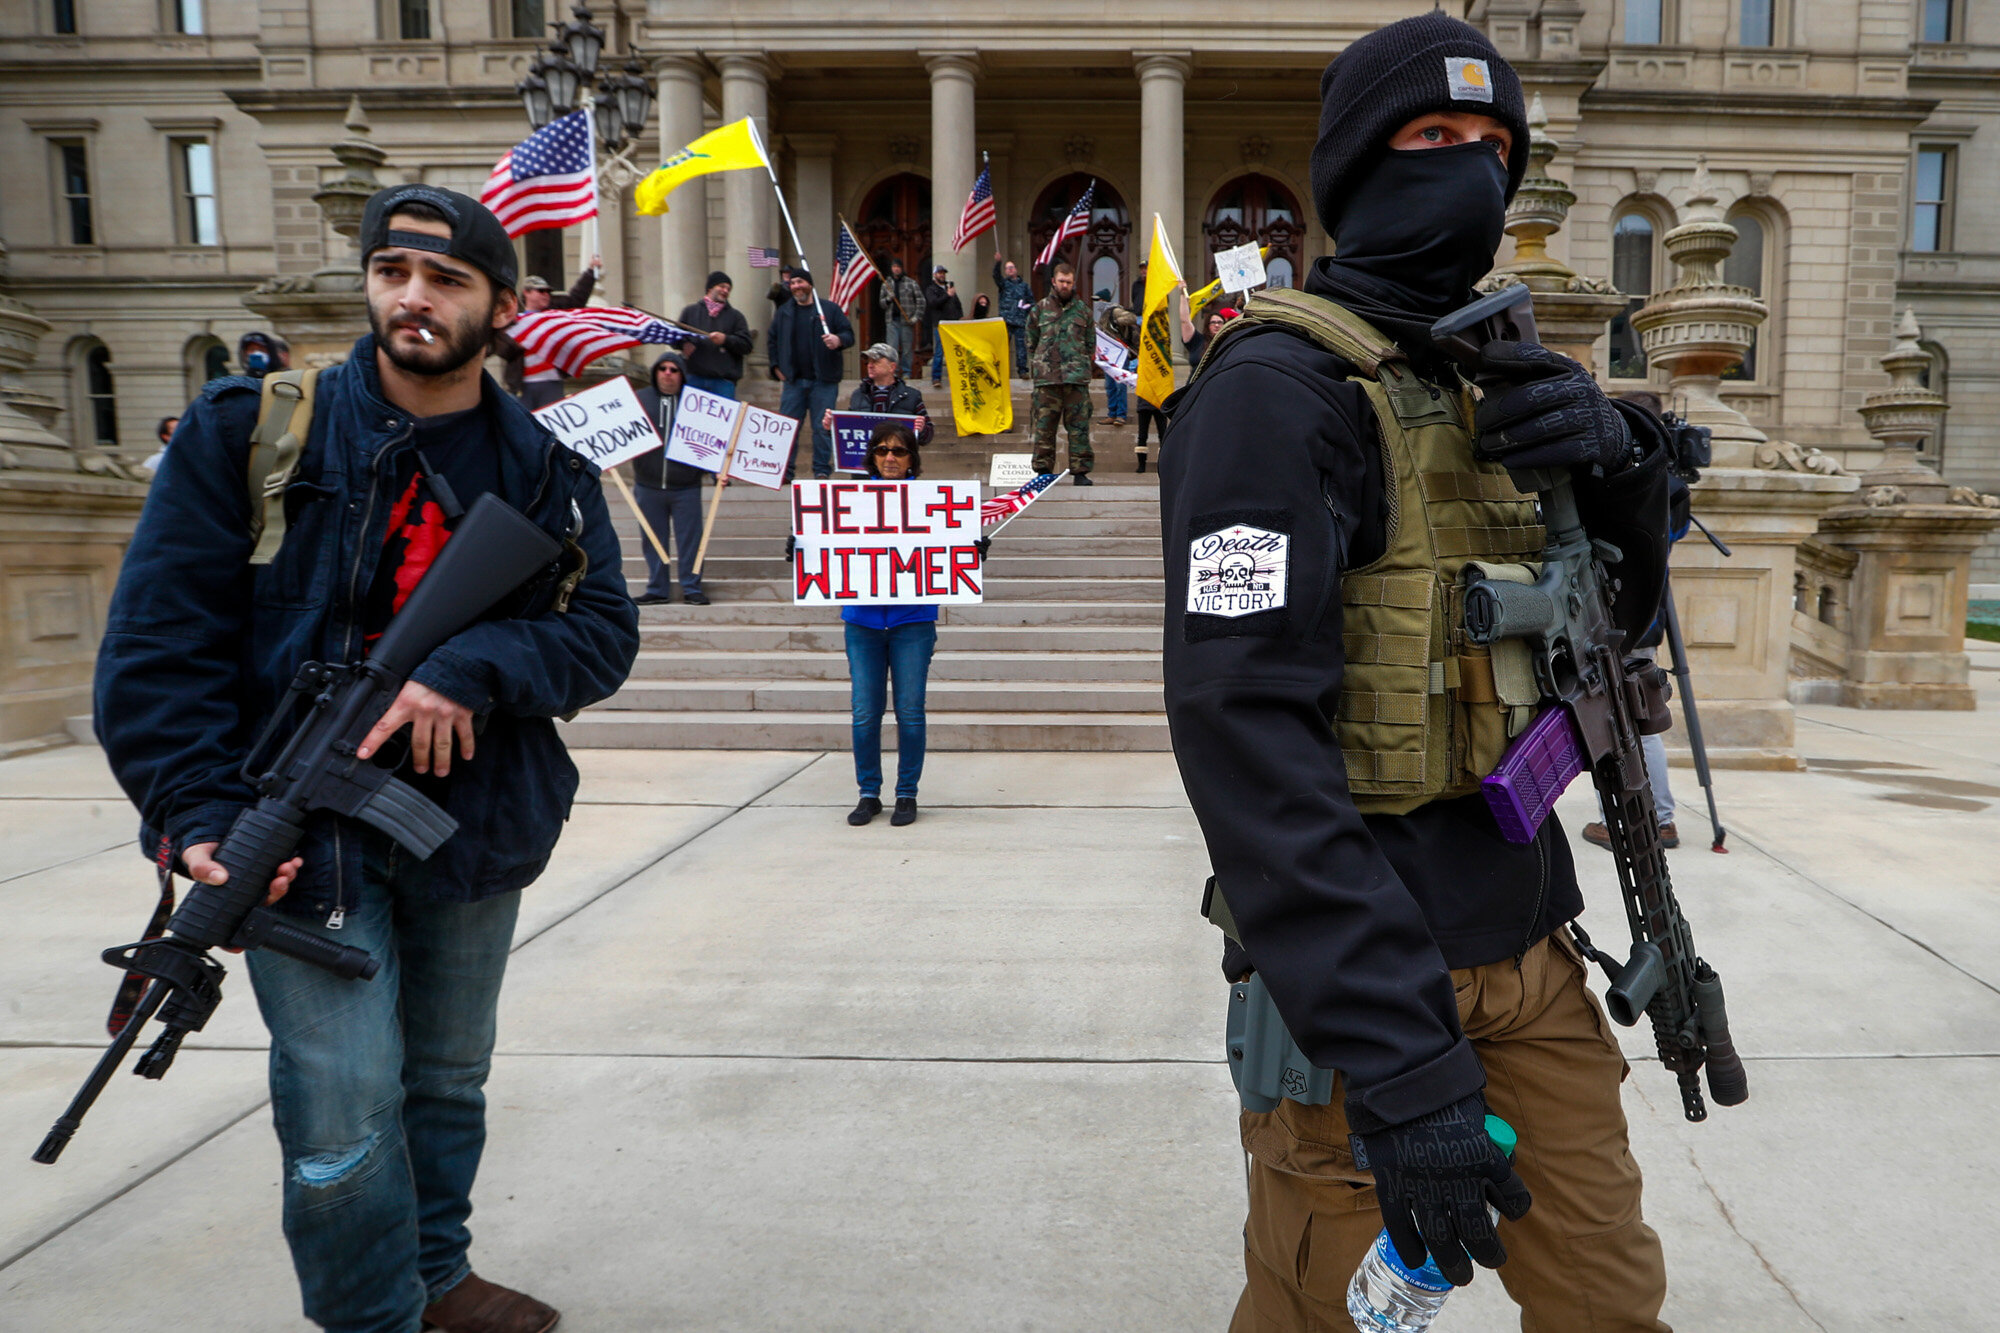 Men carry rifles near the steps of the State Capitol building in Lansing, Mich., on April 15, 2020, during a protest over Michigan Gov. Gretchen Whitmer's orders to keep people at home and businesses locked during the coronavirus outbreak. (AP Photo/Paul Sancya)